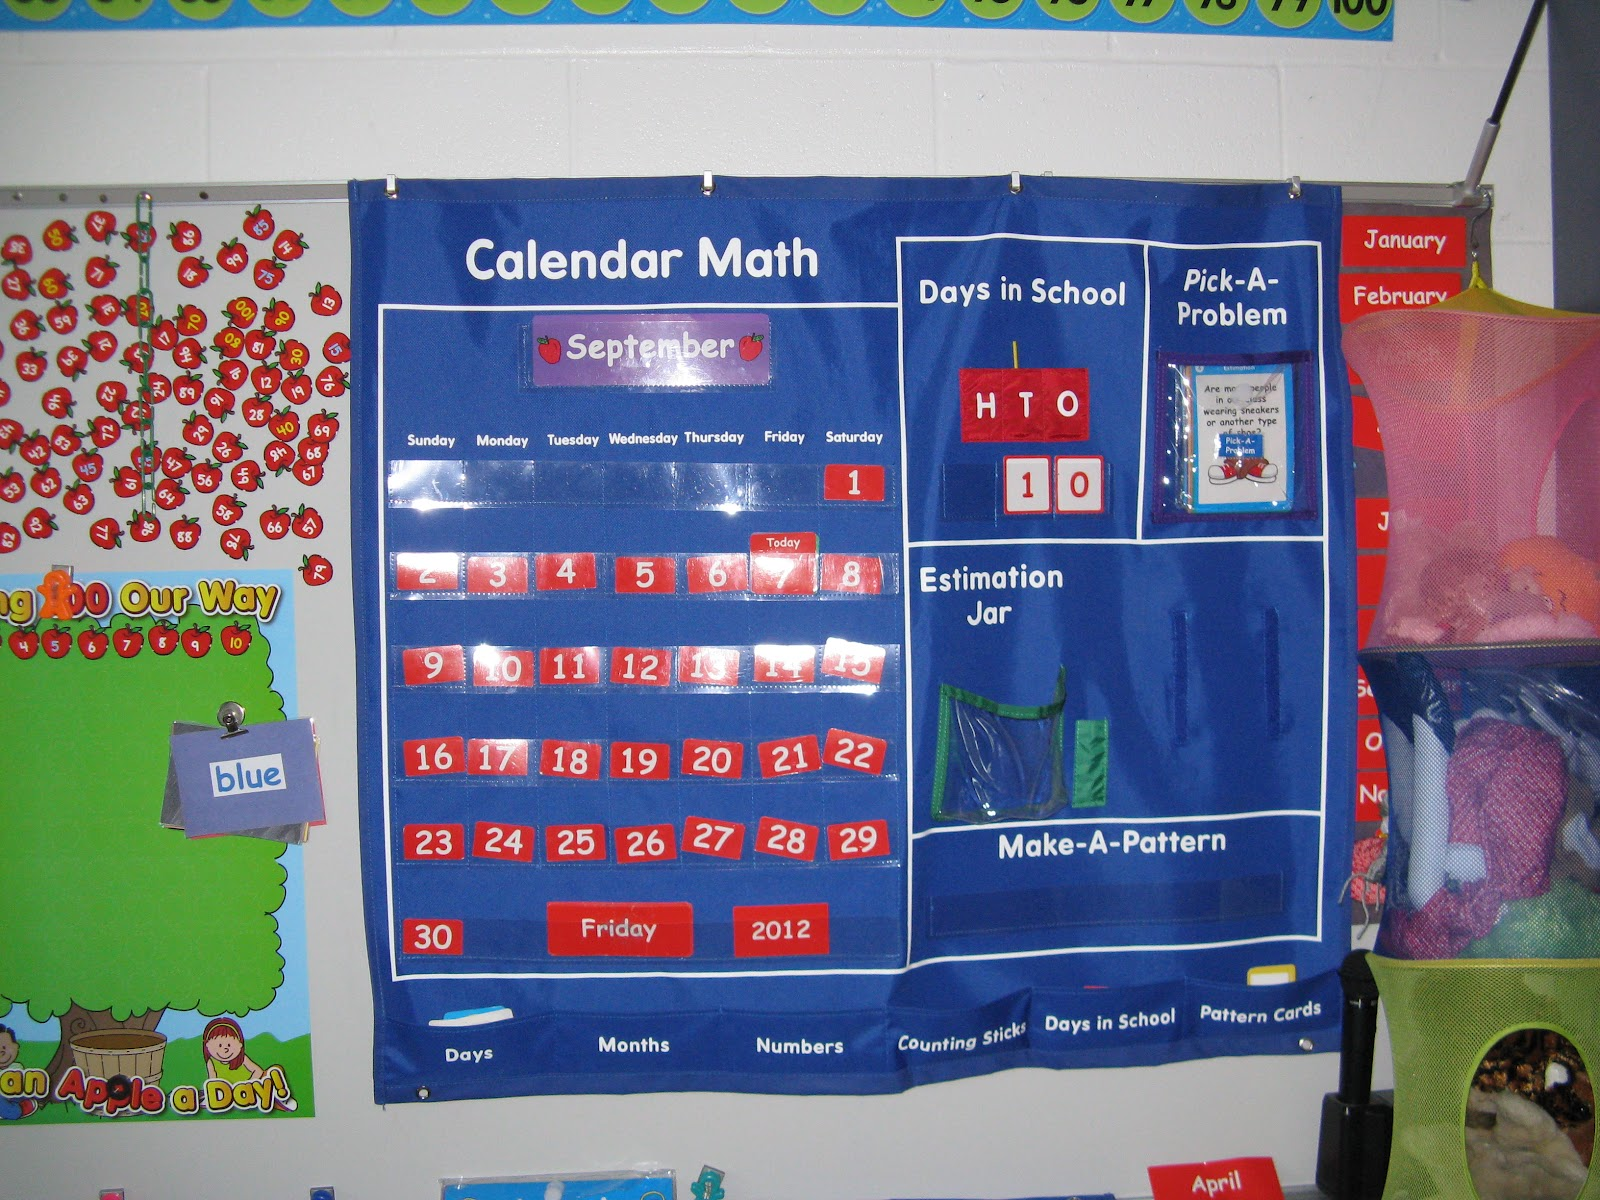 Kindergarten Calendar Math Ideas : Kindergarten adventures at maple elementary calendar math